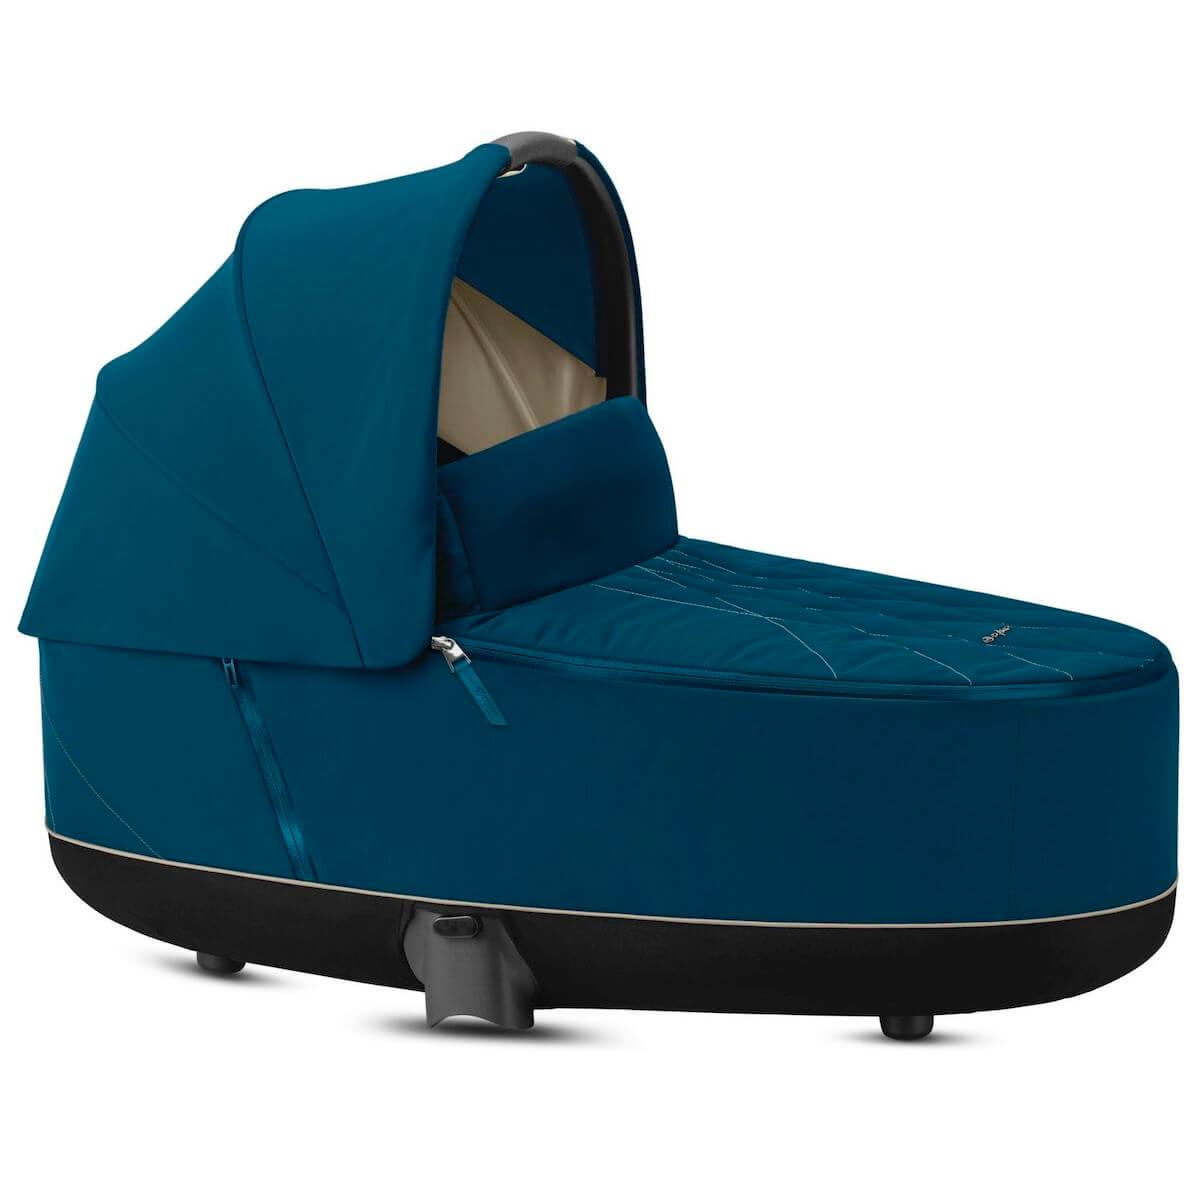 Capazo de luxe PRIAM Cybex Mountain blue-turquoise